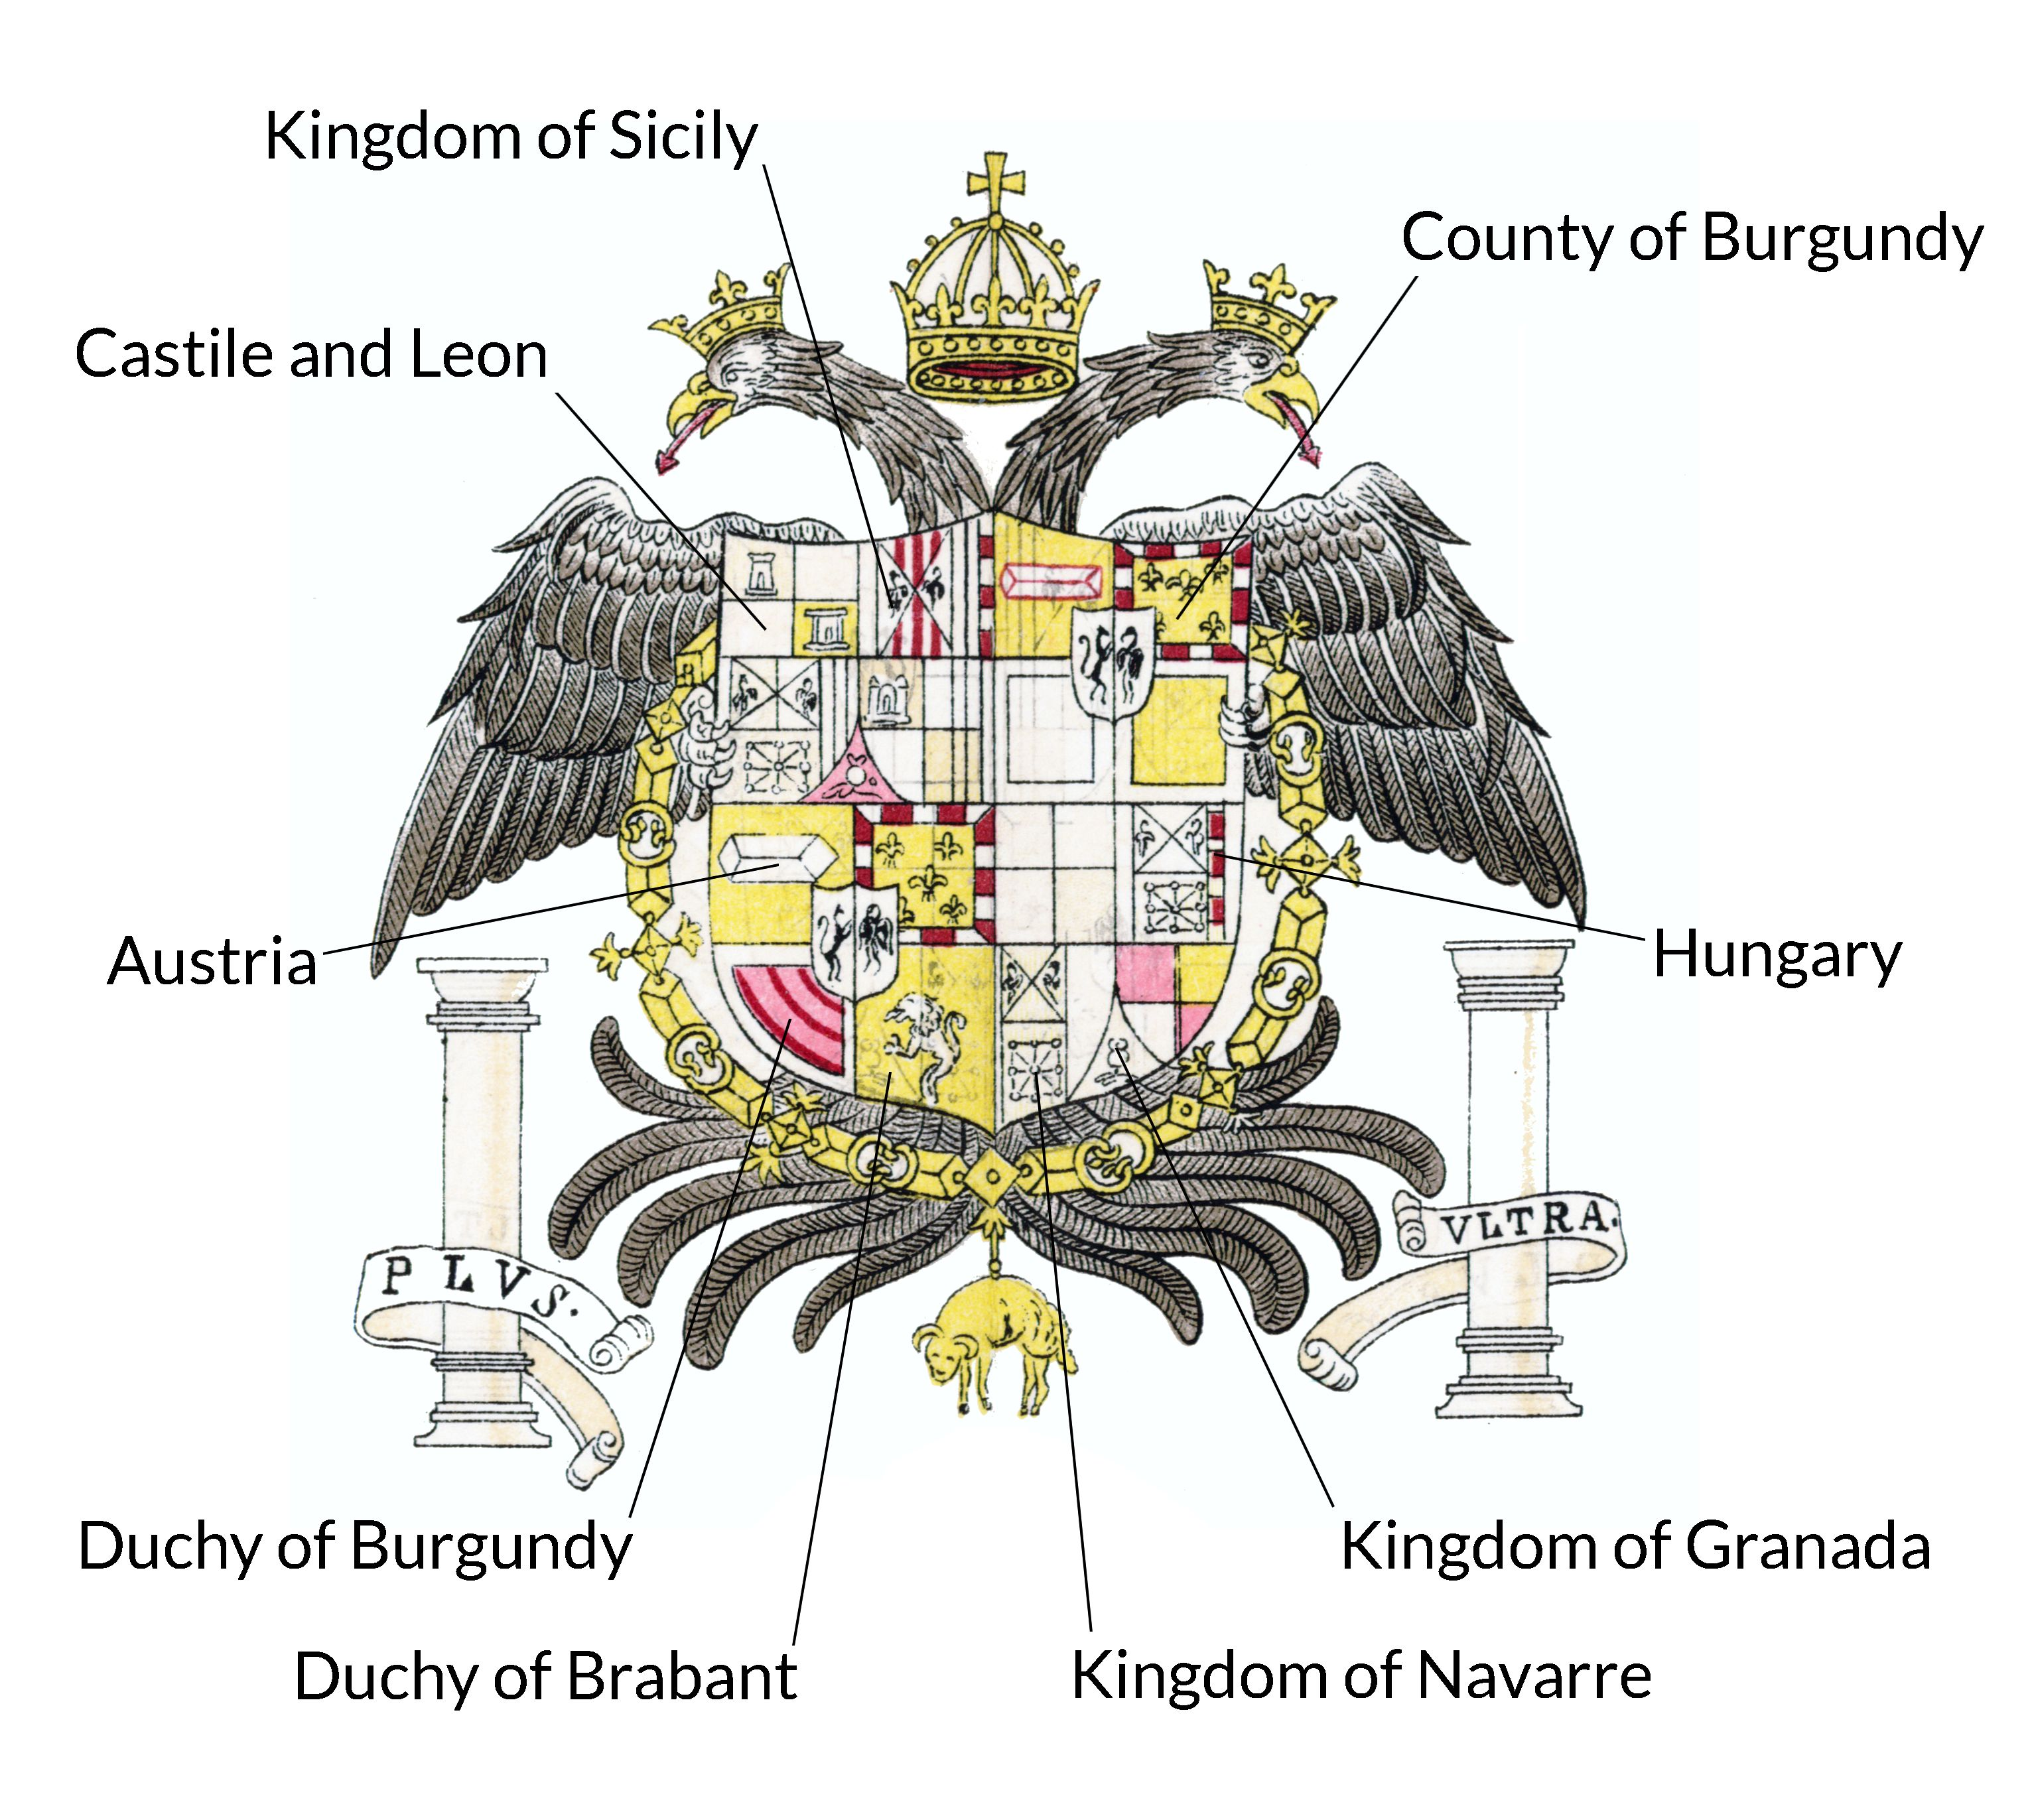 FIGURE 33. The kingdoms of the Holy Roman Empire in the coat of arms of Emperor Charles V.